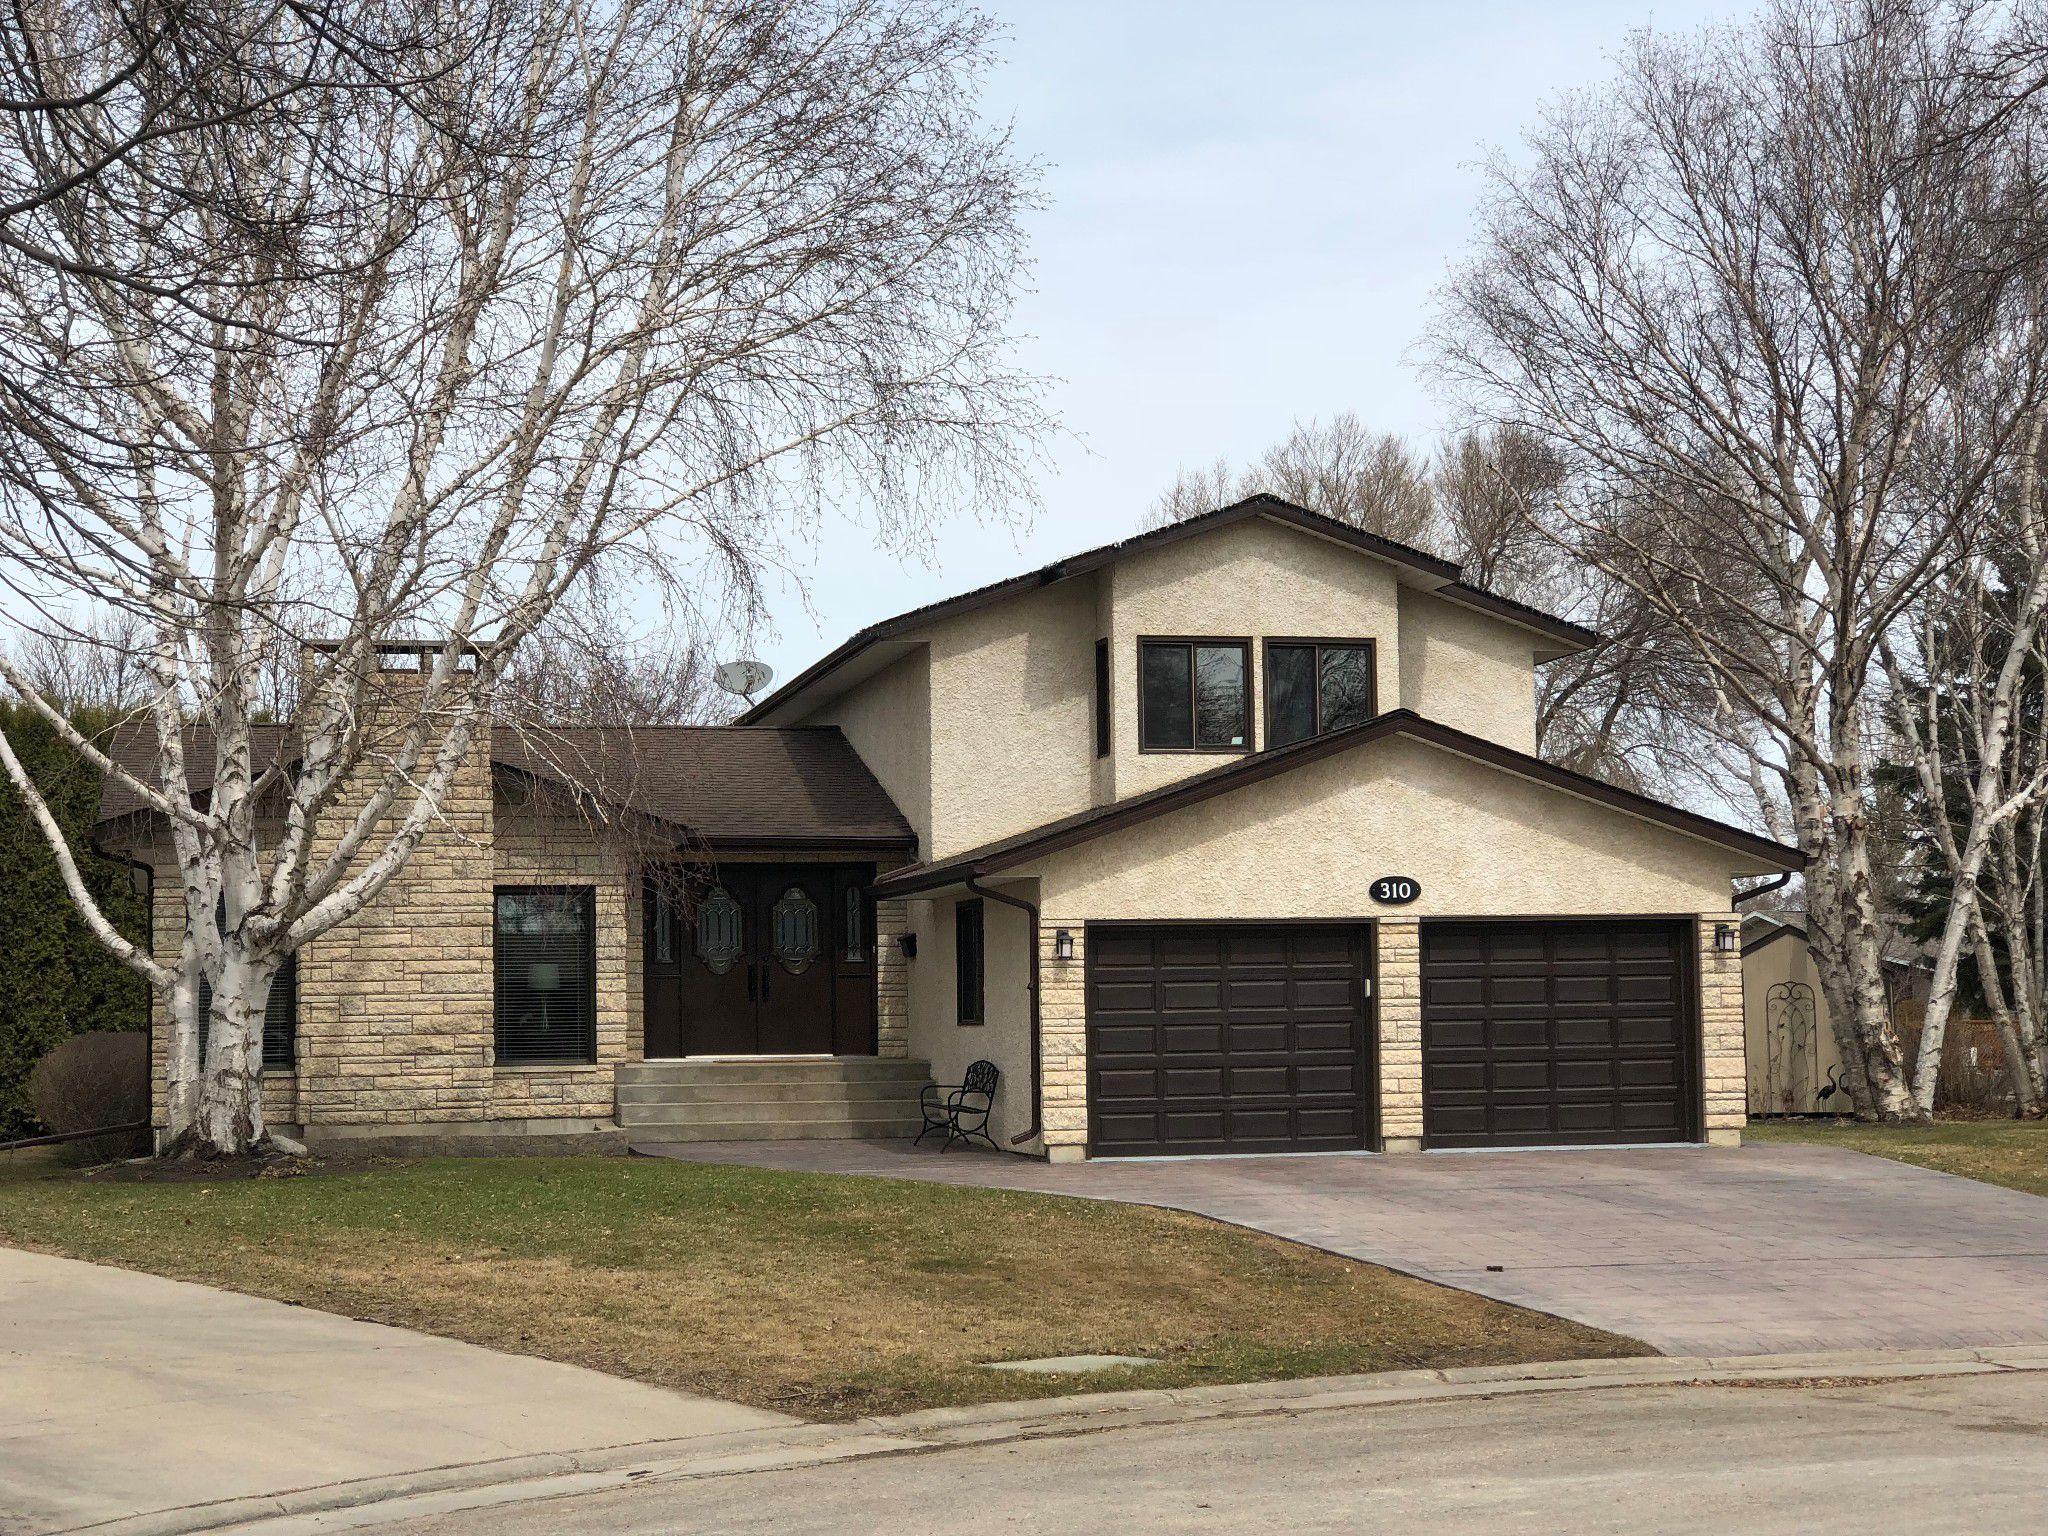 Main Photo: 310 Merrell Place in Dauphin: Single Family Detached for sale (R30 - Dauphin and Area)